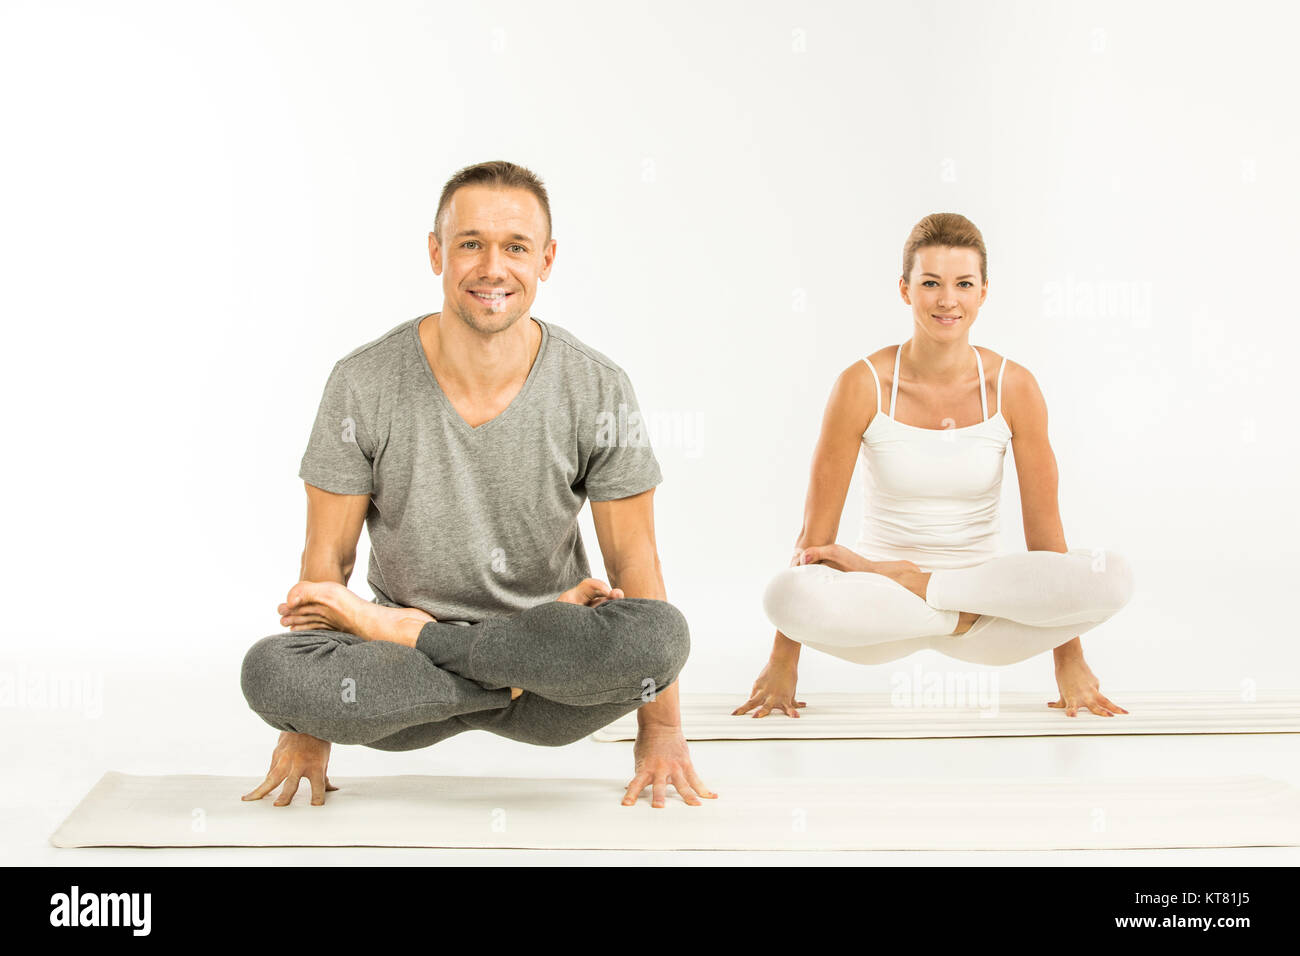 Couple sitting in yoga position - Stock Image